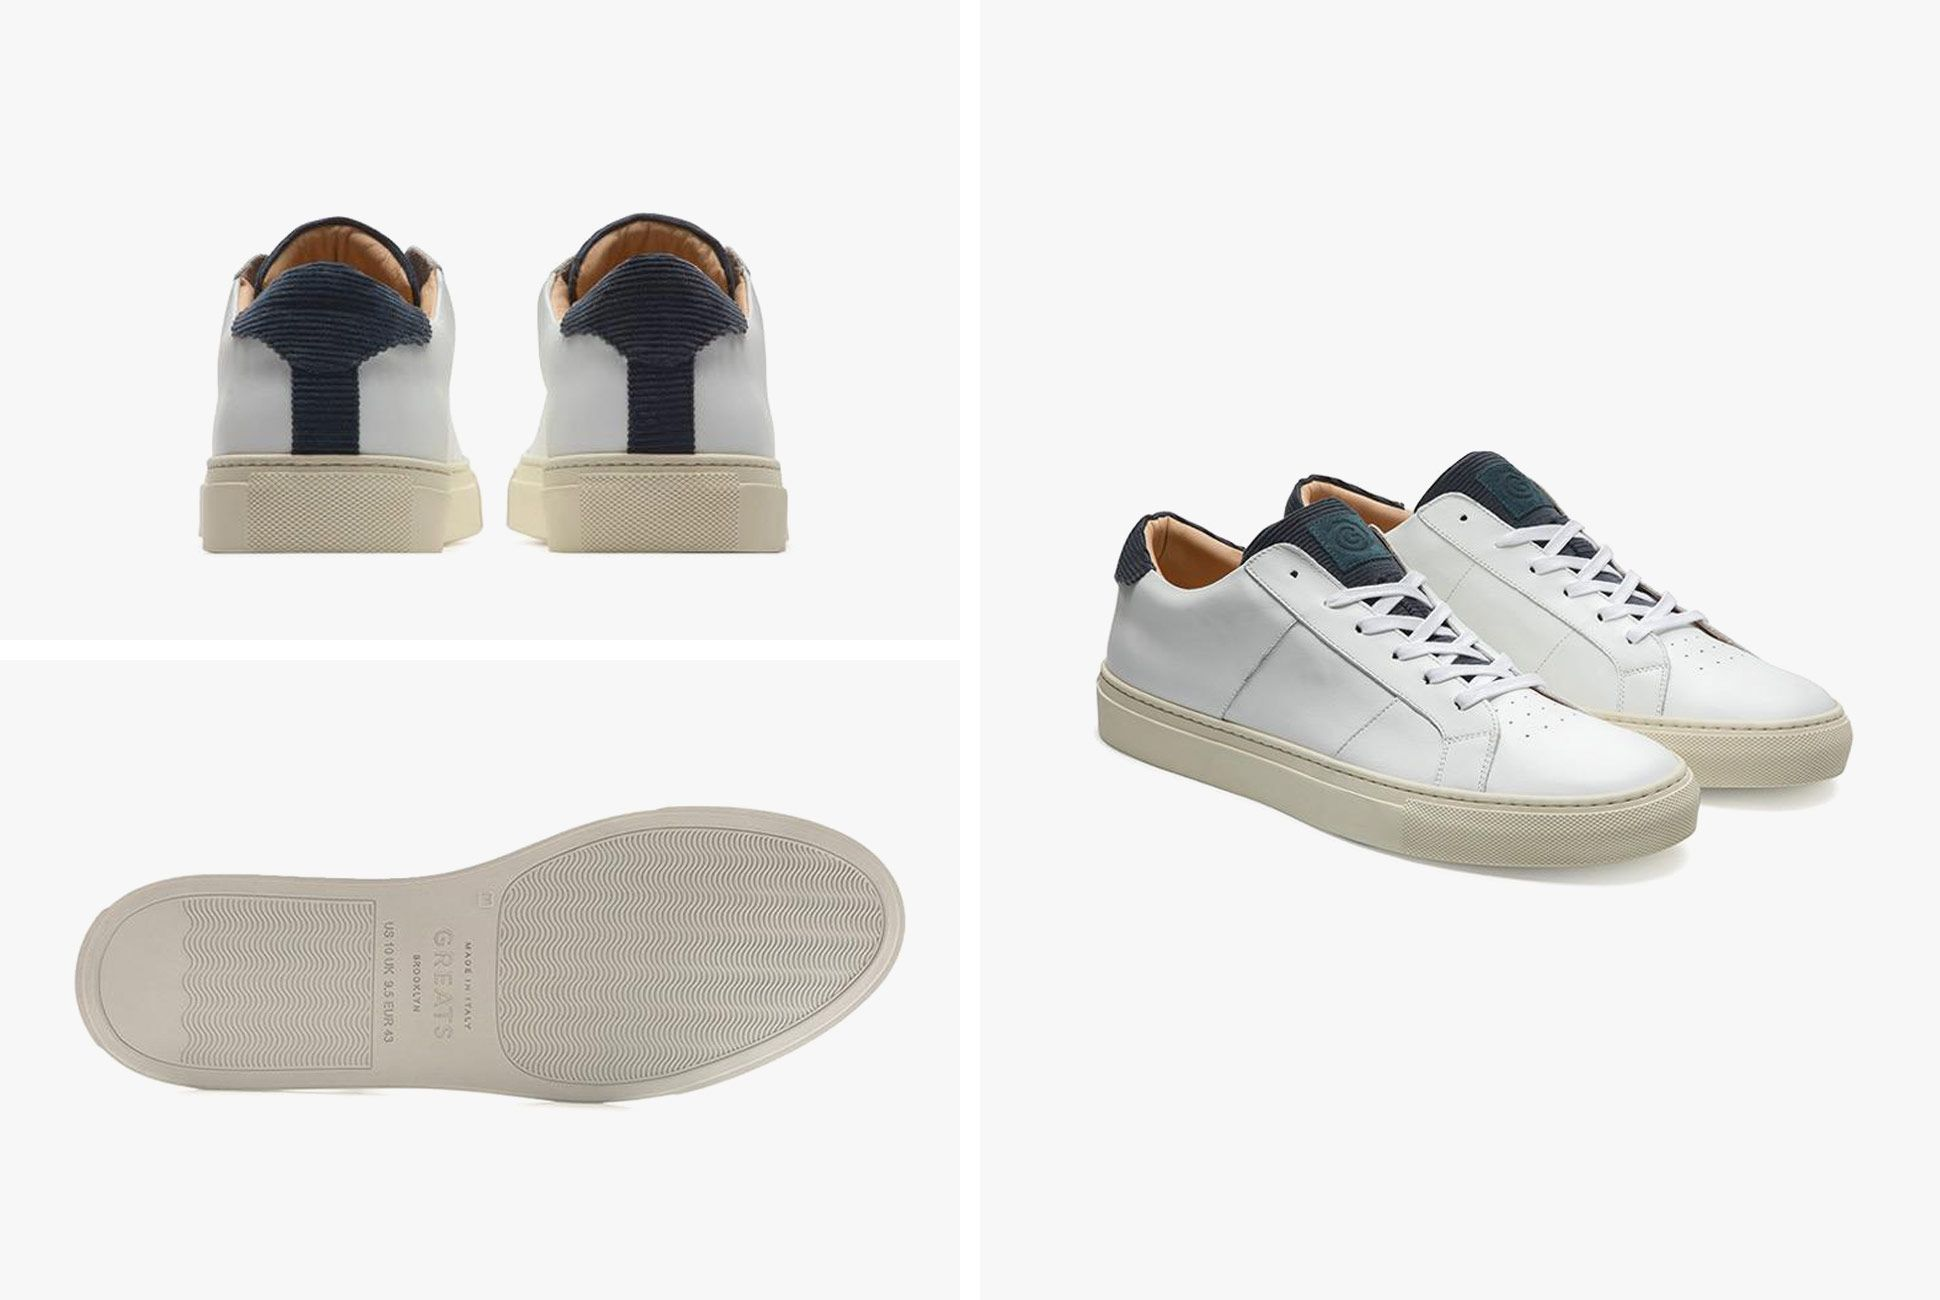 Grab These Classic Greats Sneakers for